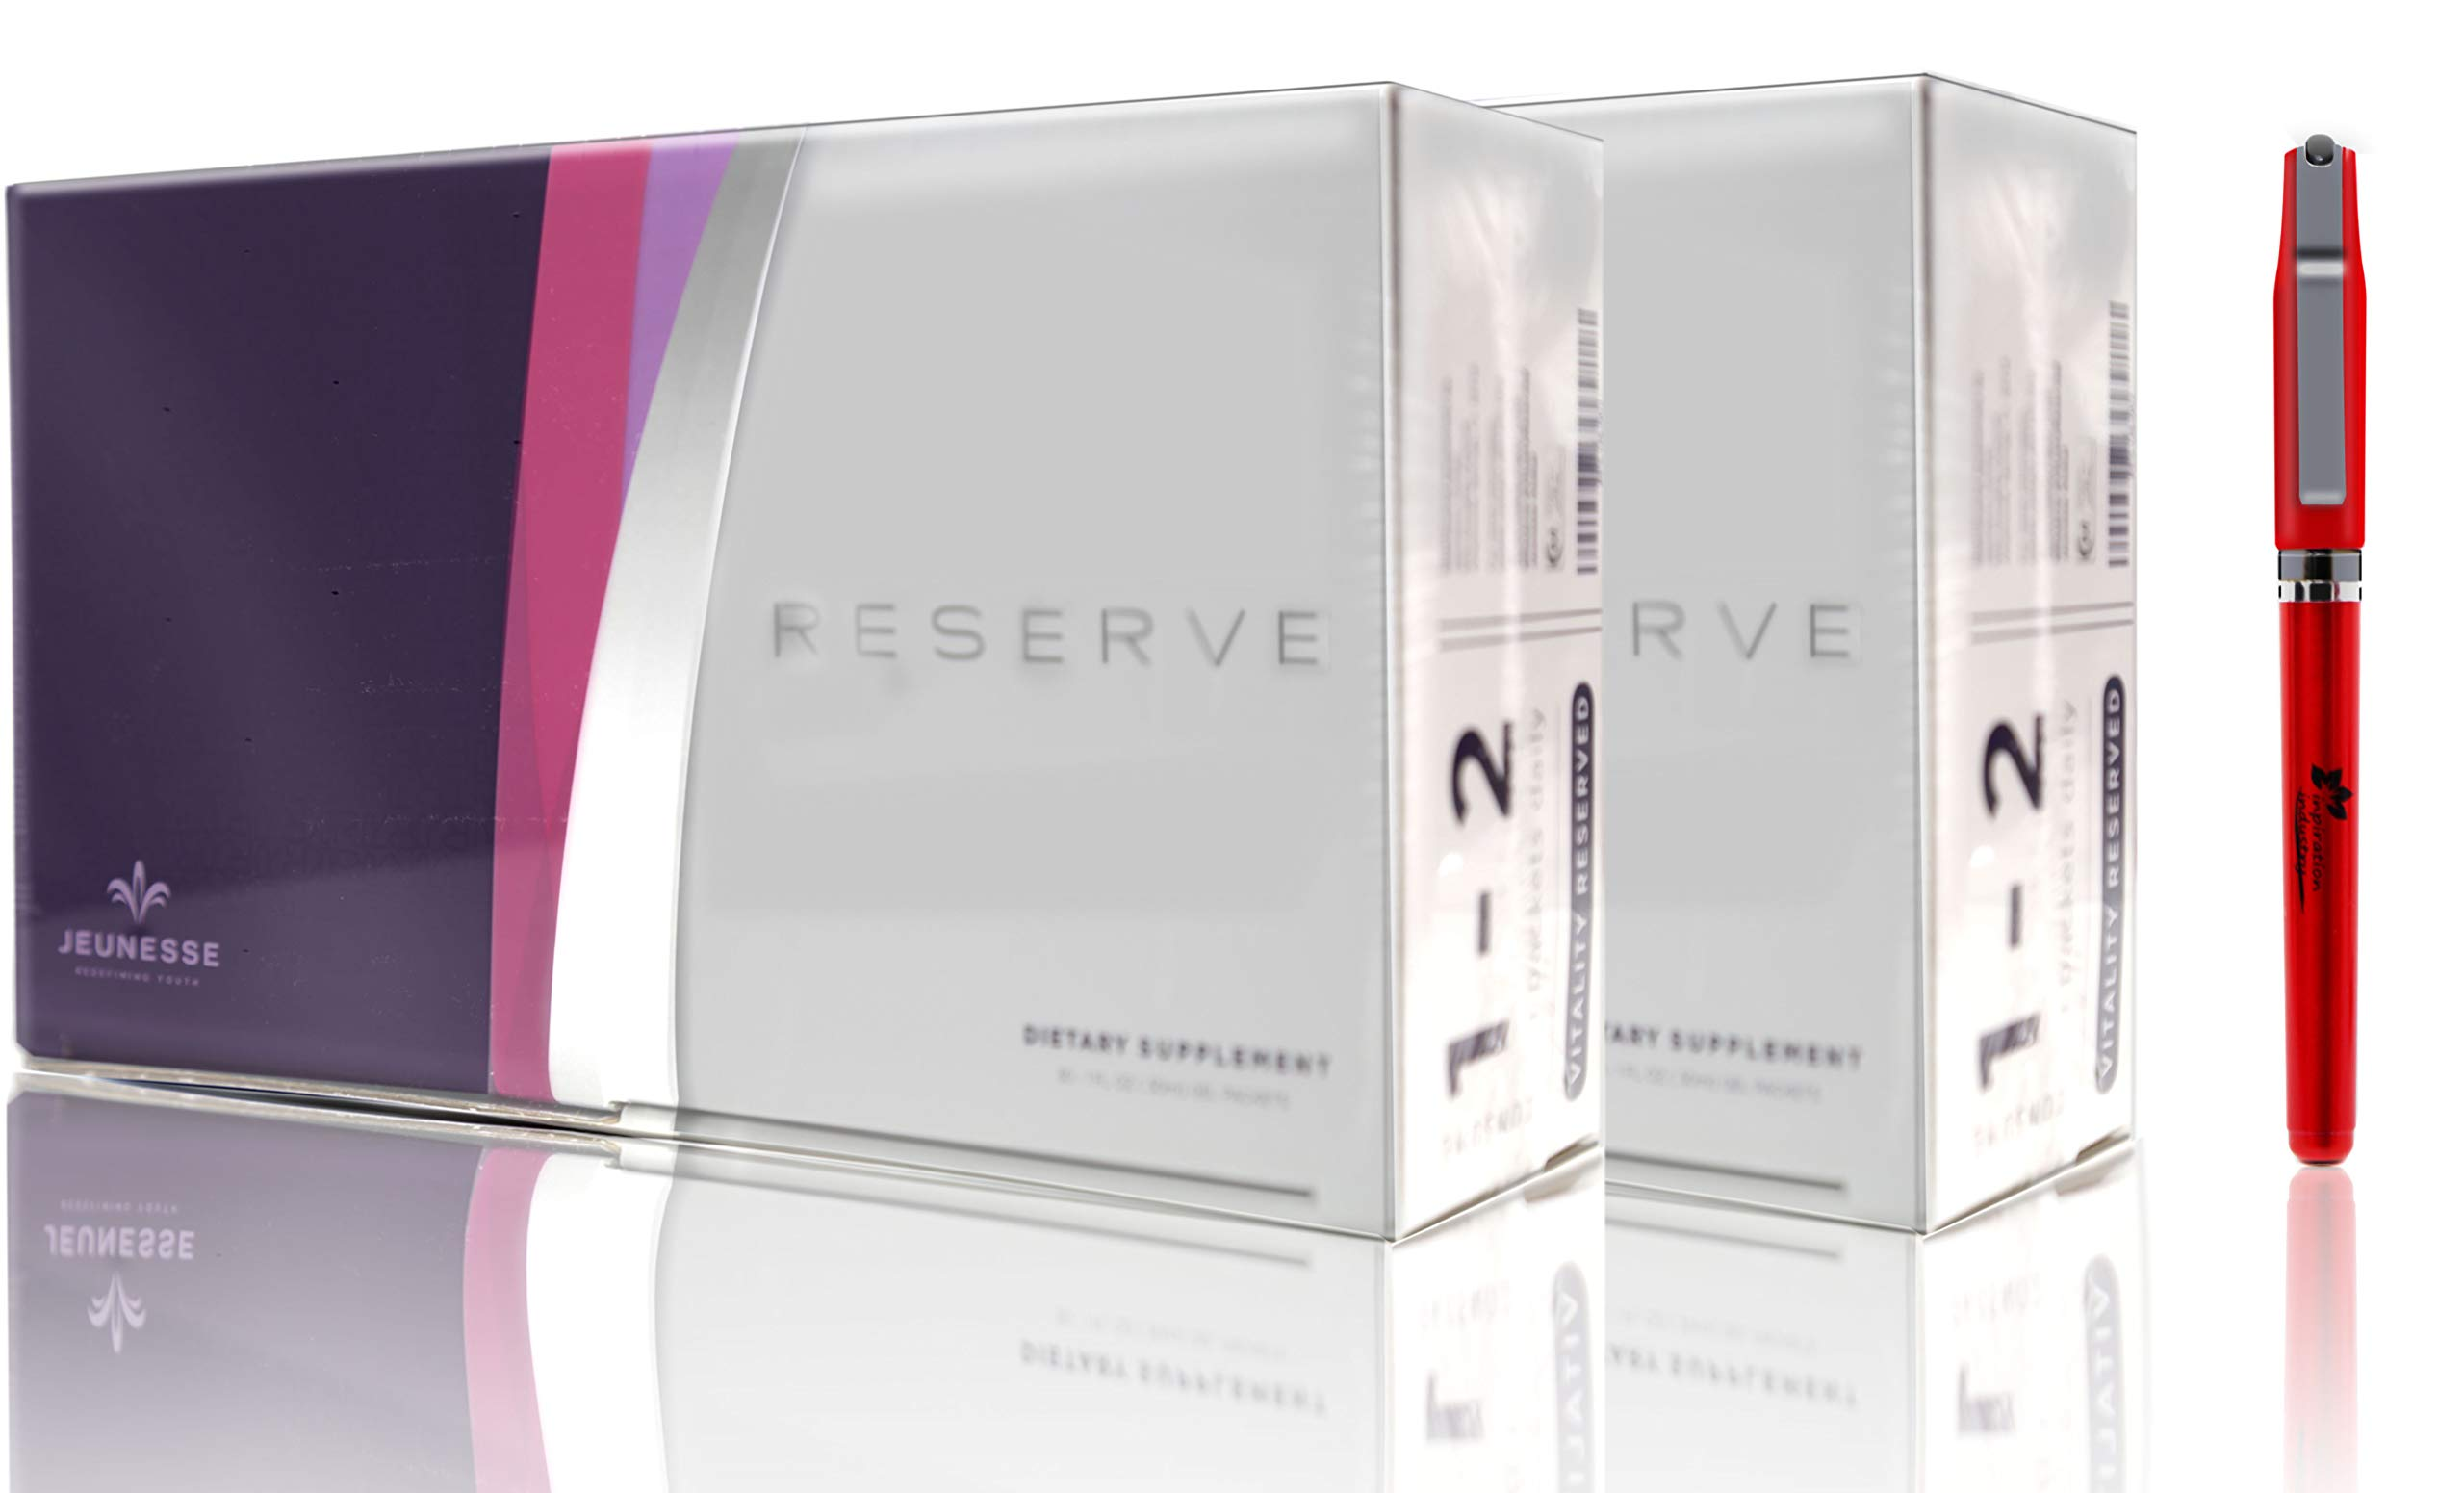 Resveratrol Jeunesse Reserve Supplement Antioxidant Fruit Blend 30 Packets/Box, Reserve Dietary Supplement Comes with Free Inspiration Industry New York Pen (2 Boxes) by Jeunesse